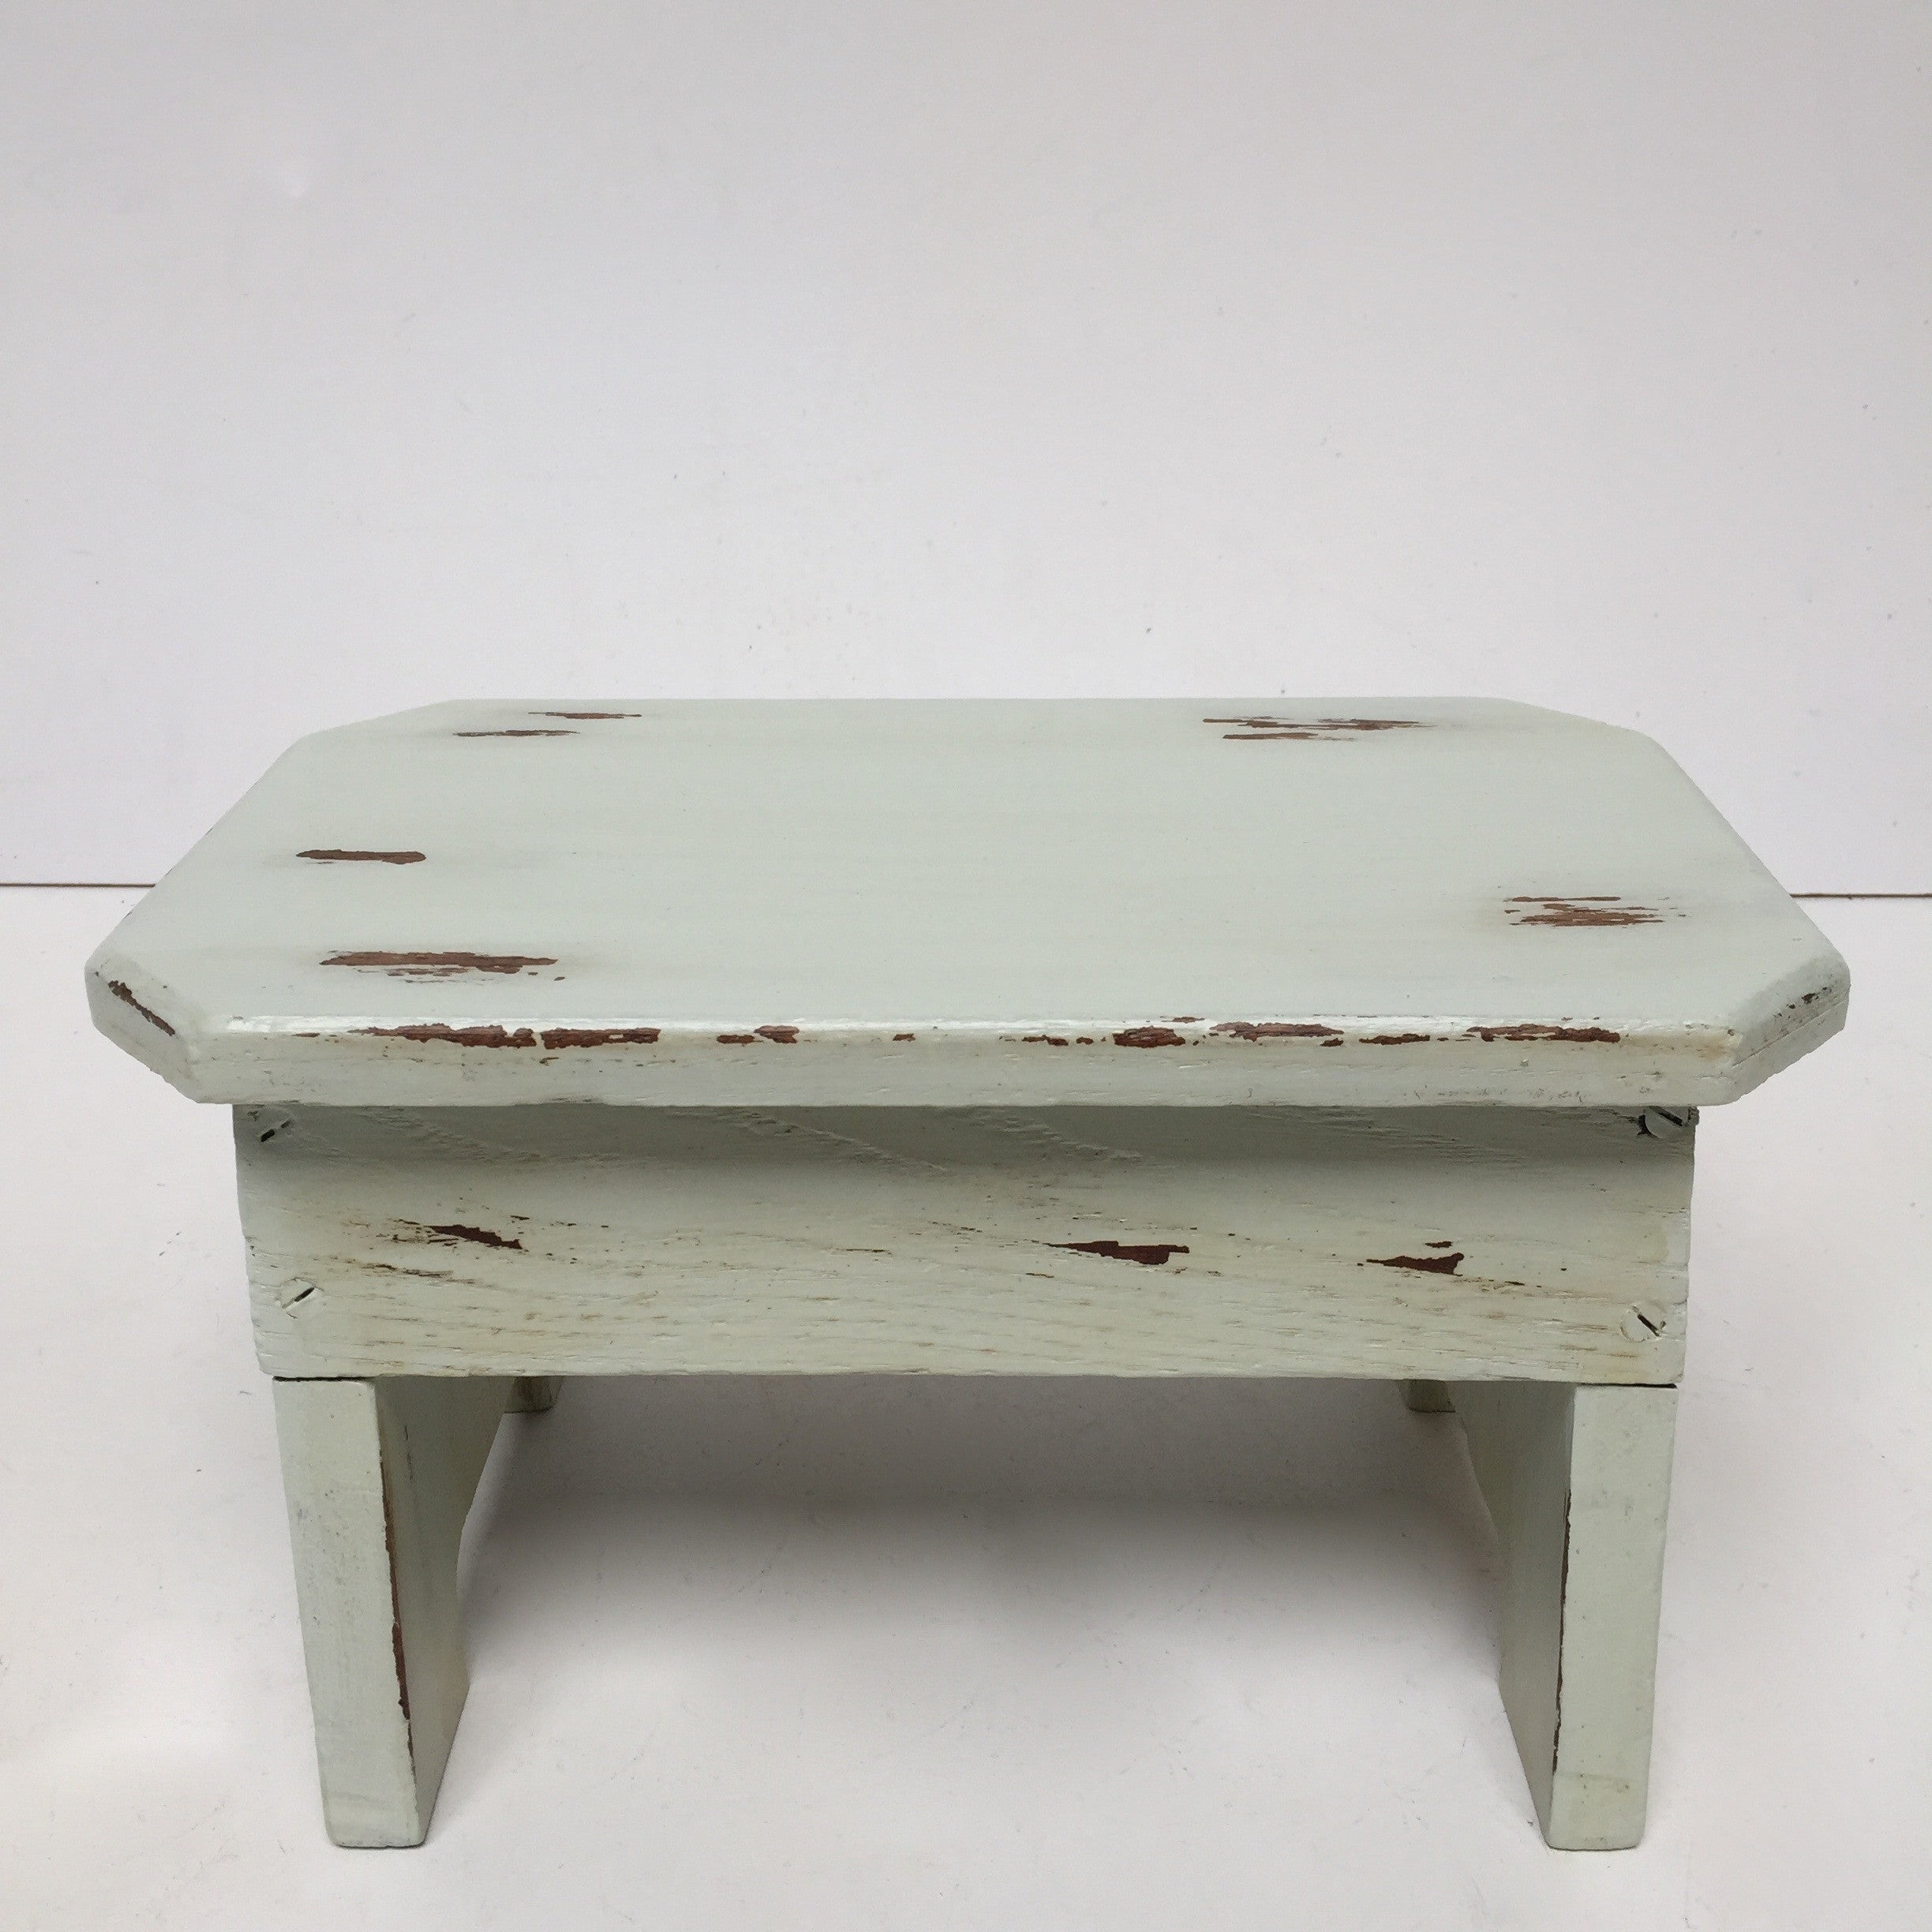 French Farm Antique Shabby Chic Stool - Ancien Tabouret Shabby Mint - Free Delivery UK & France